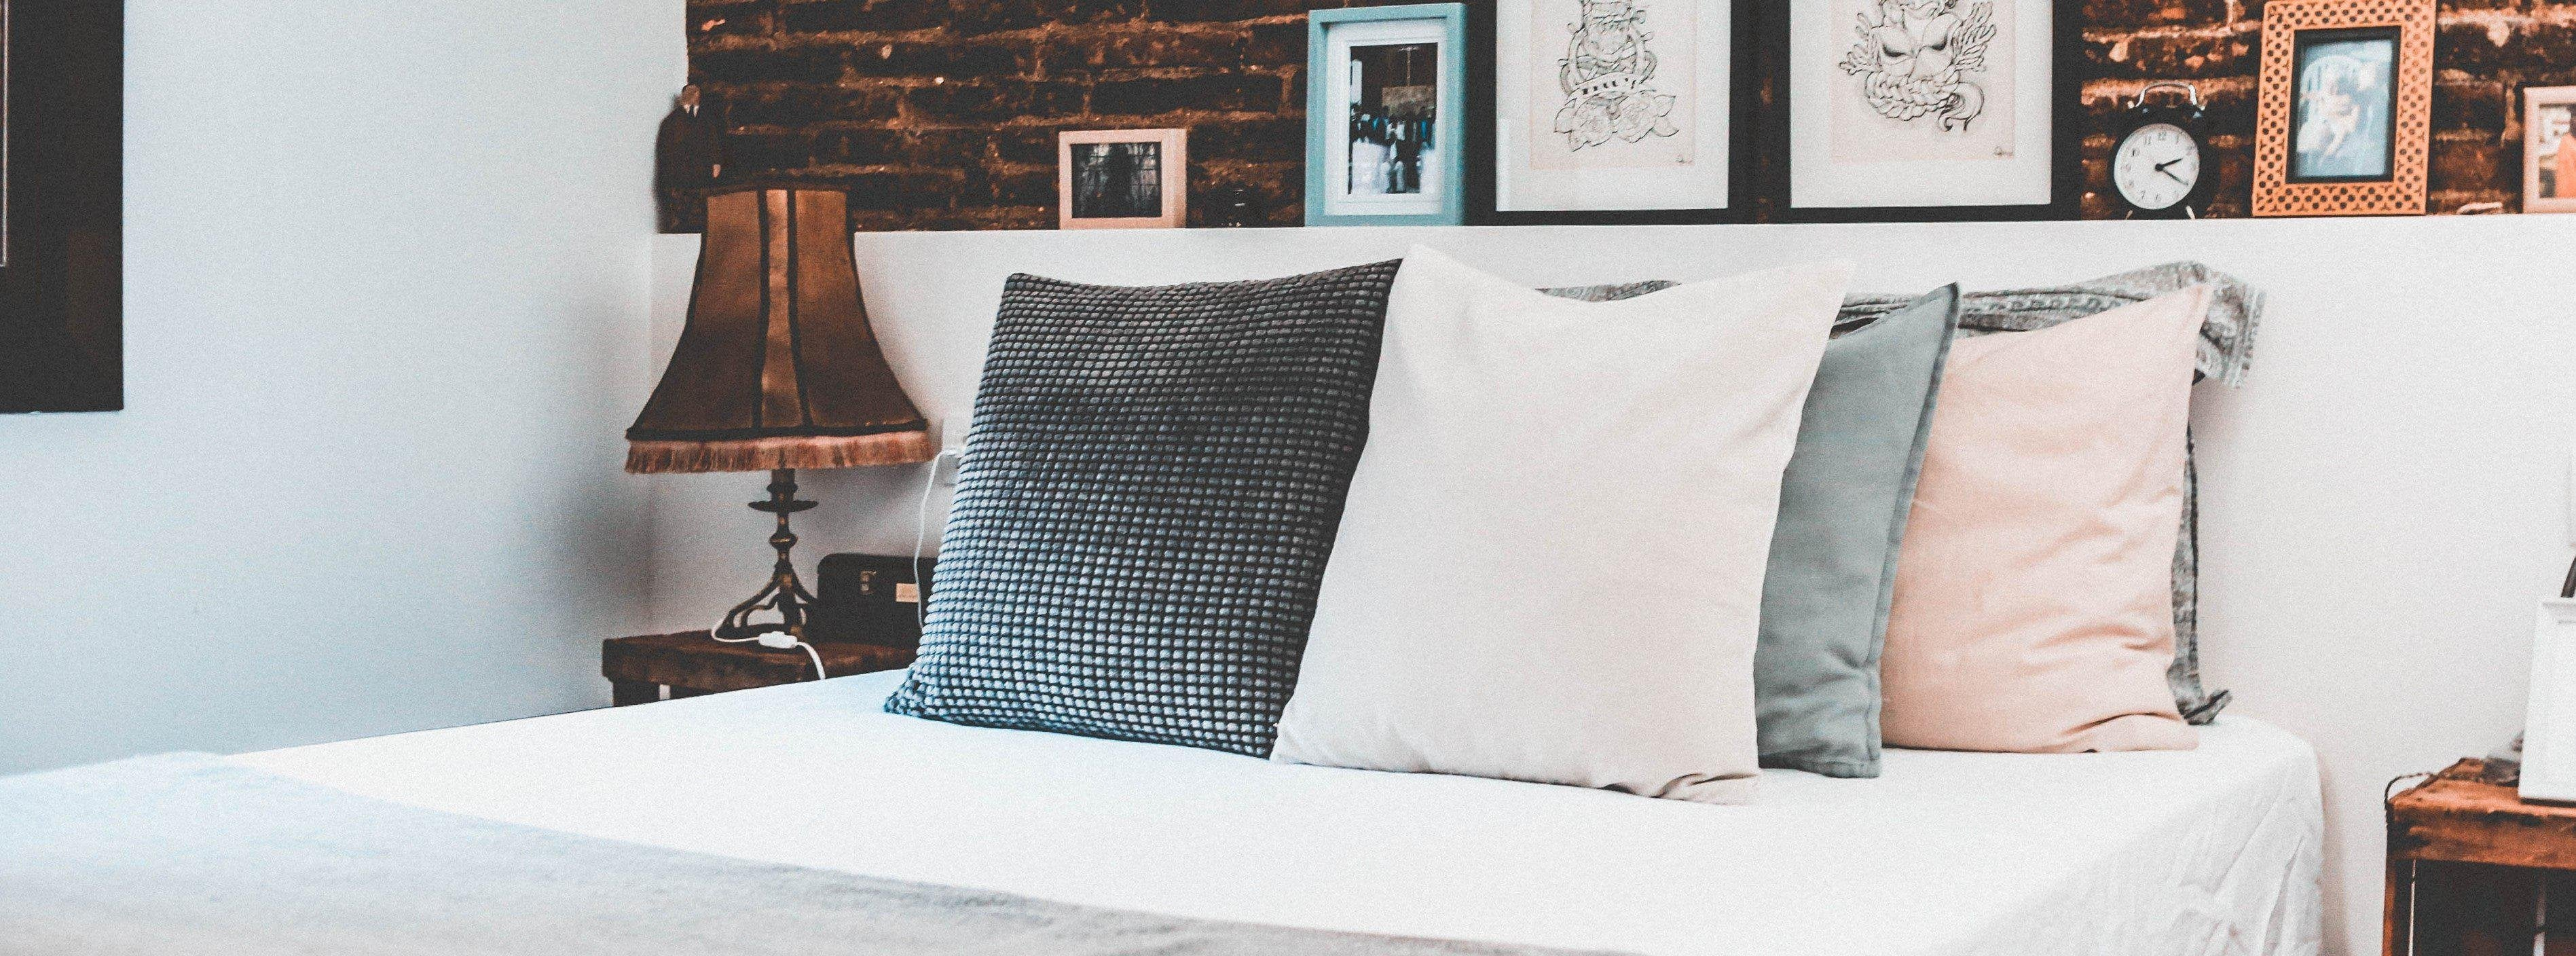 4 Types of Cushion Styling Options for Your Home - Cushion it!